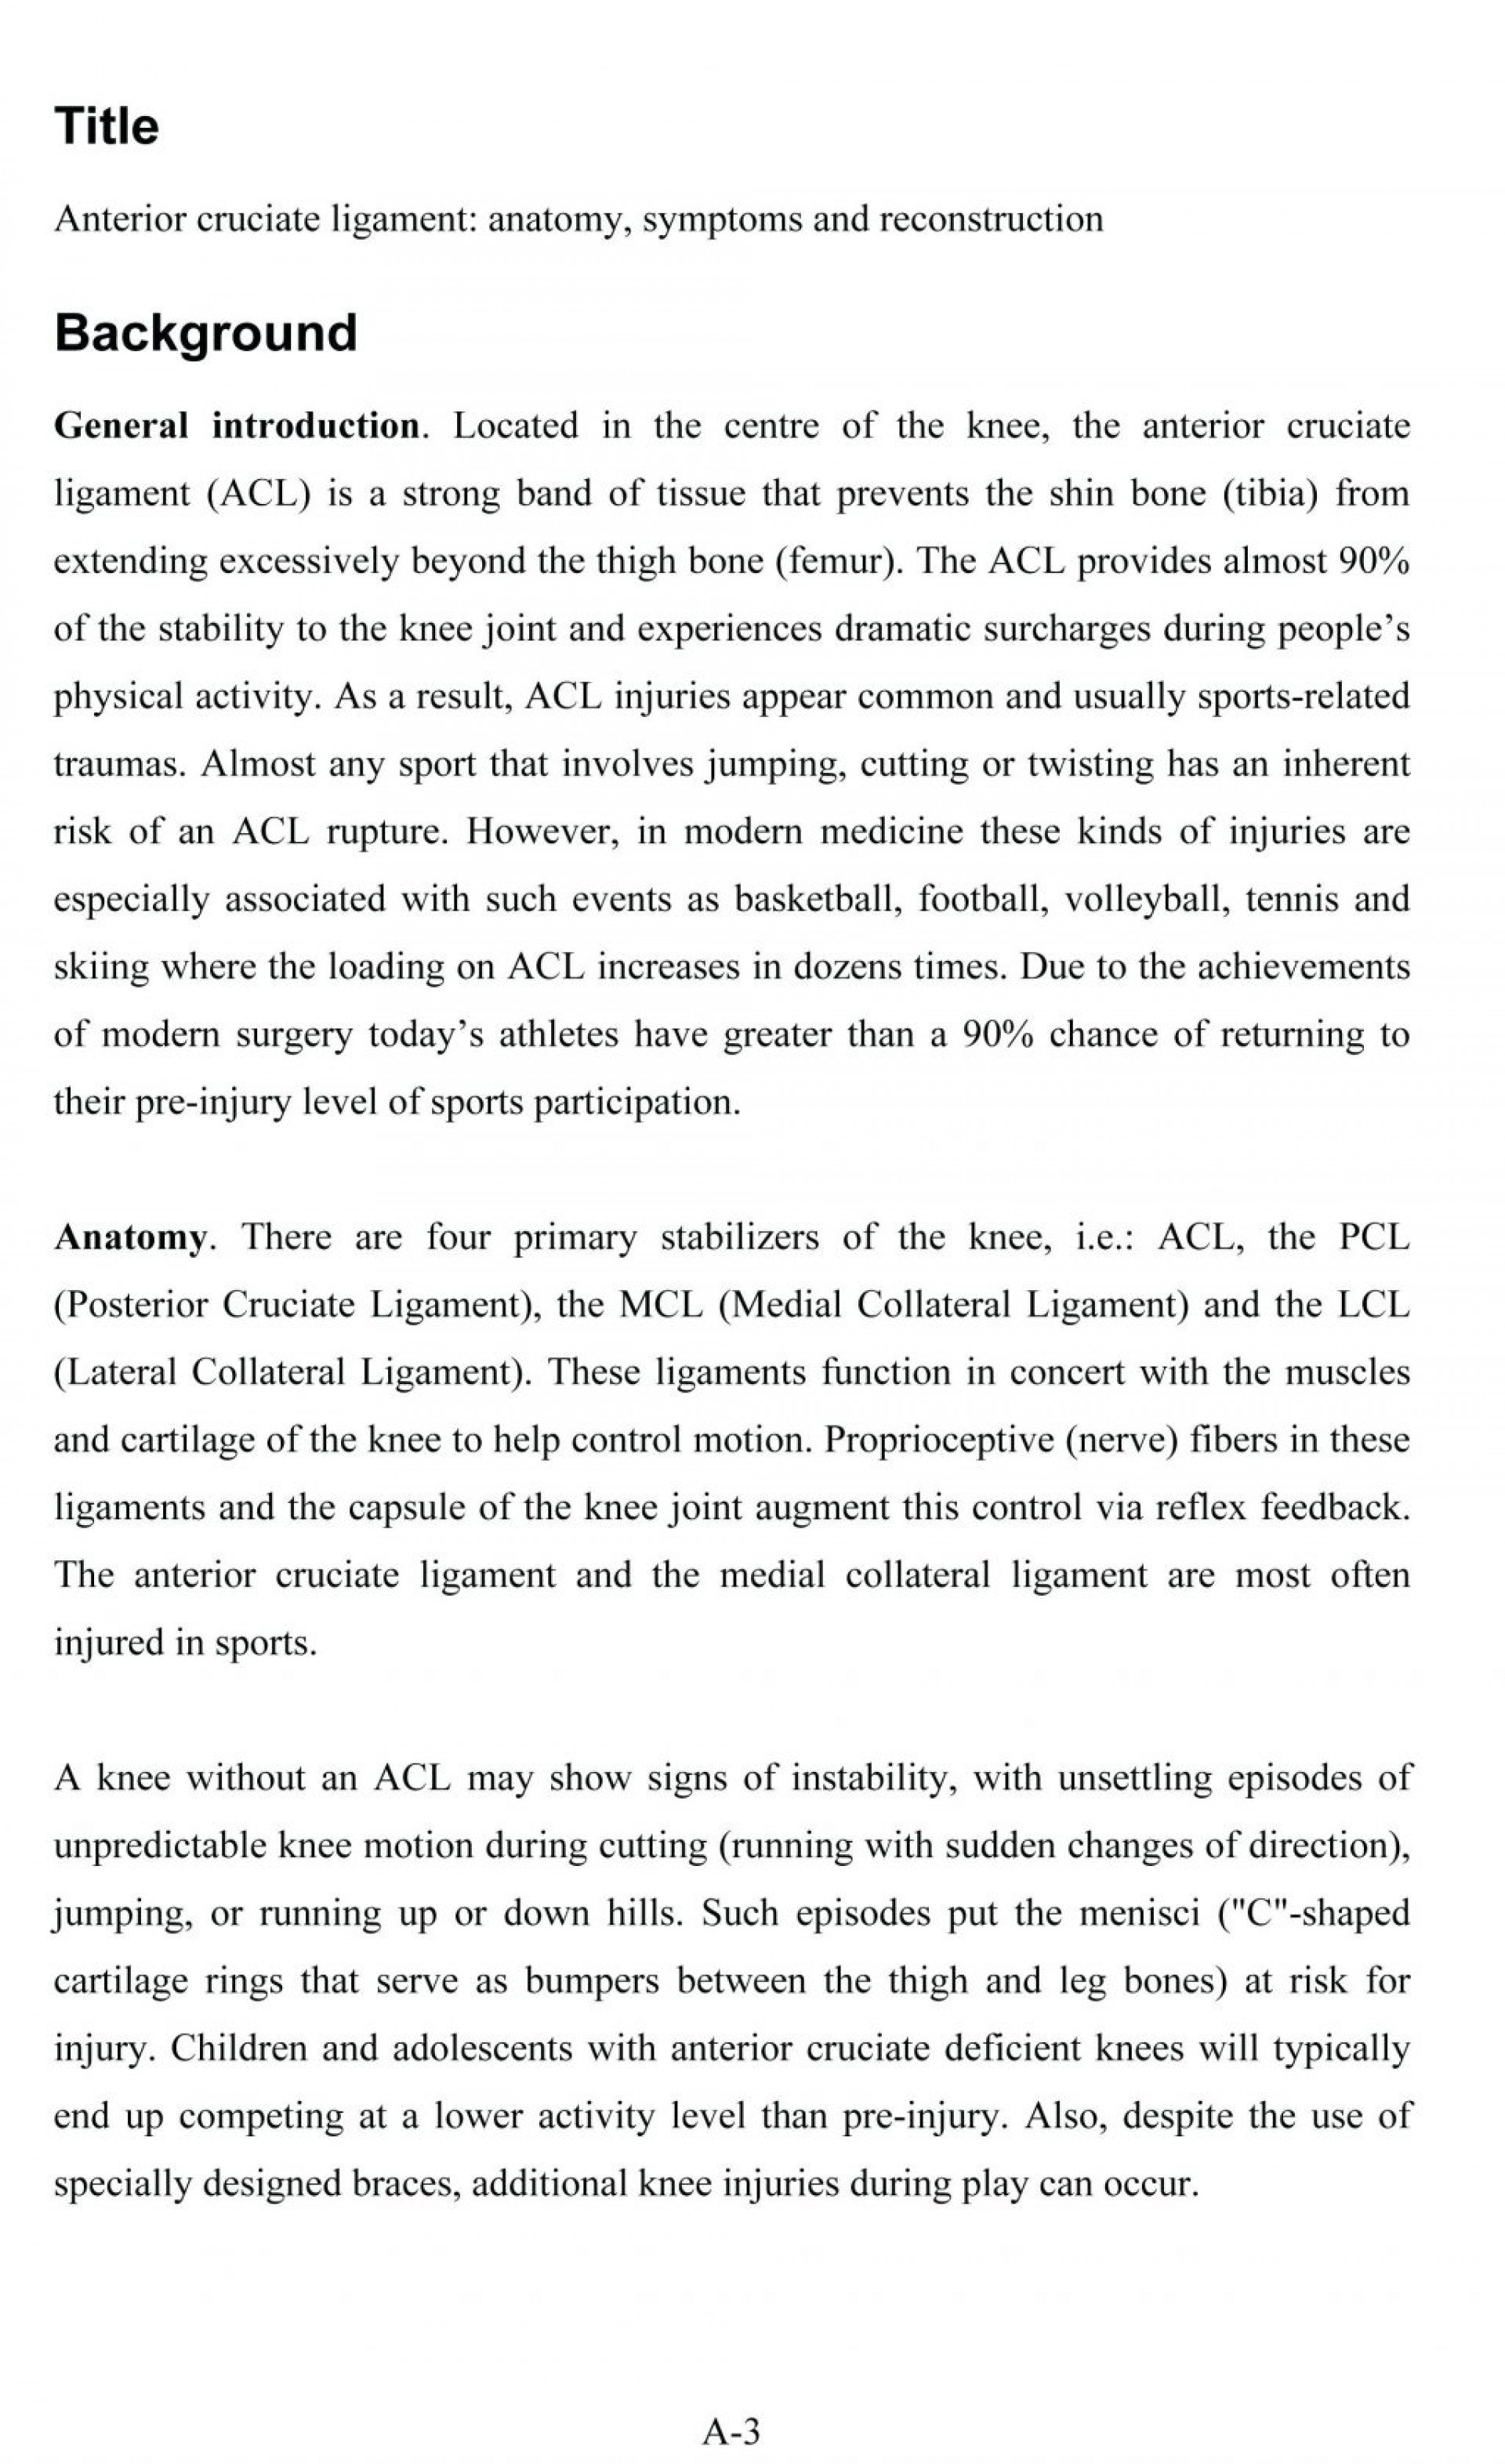 019 20writing Research Report Sample Essays Hub Paper Introduction20le Mla Format Apa20 1024x1677 Examples Exceptional Pdf Apa Example Of Methodology Section Ieee .pdf 1920